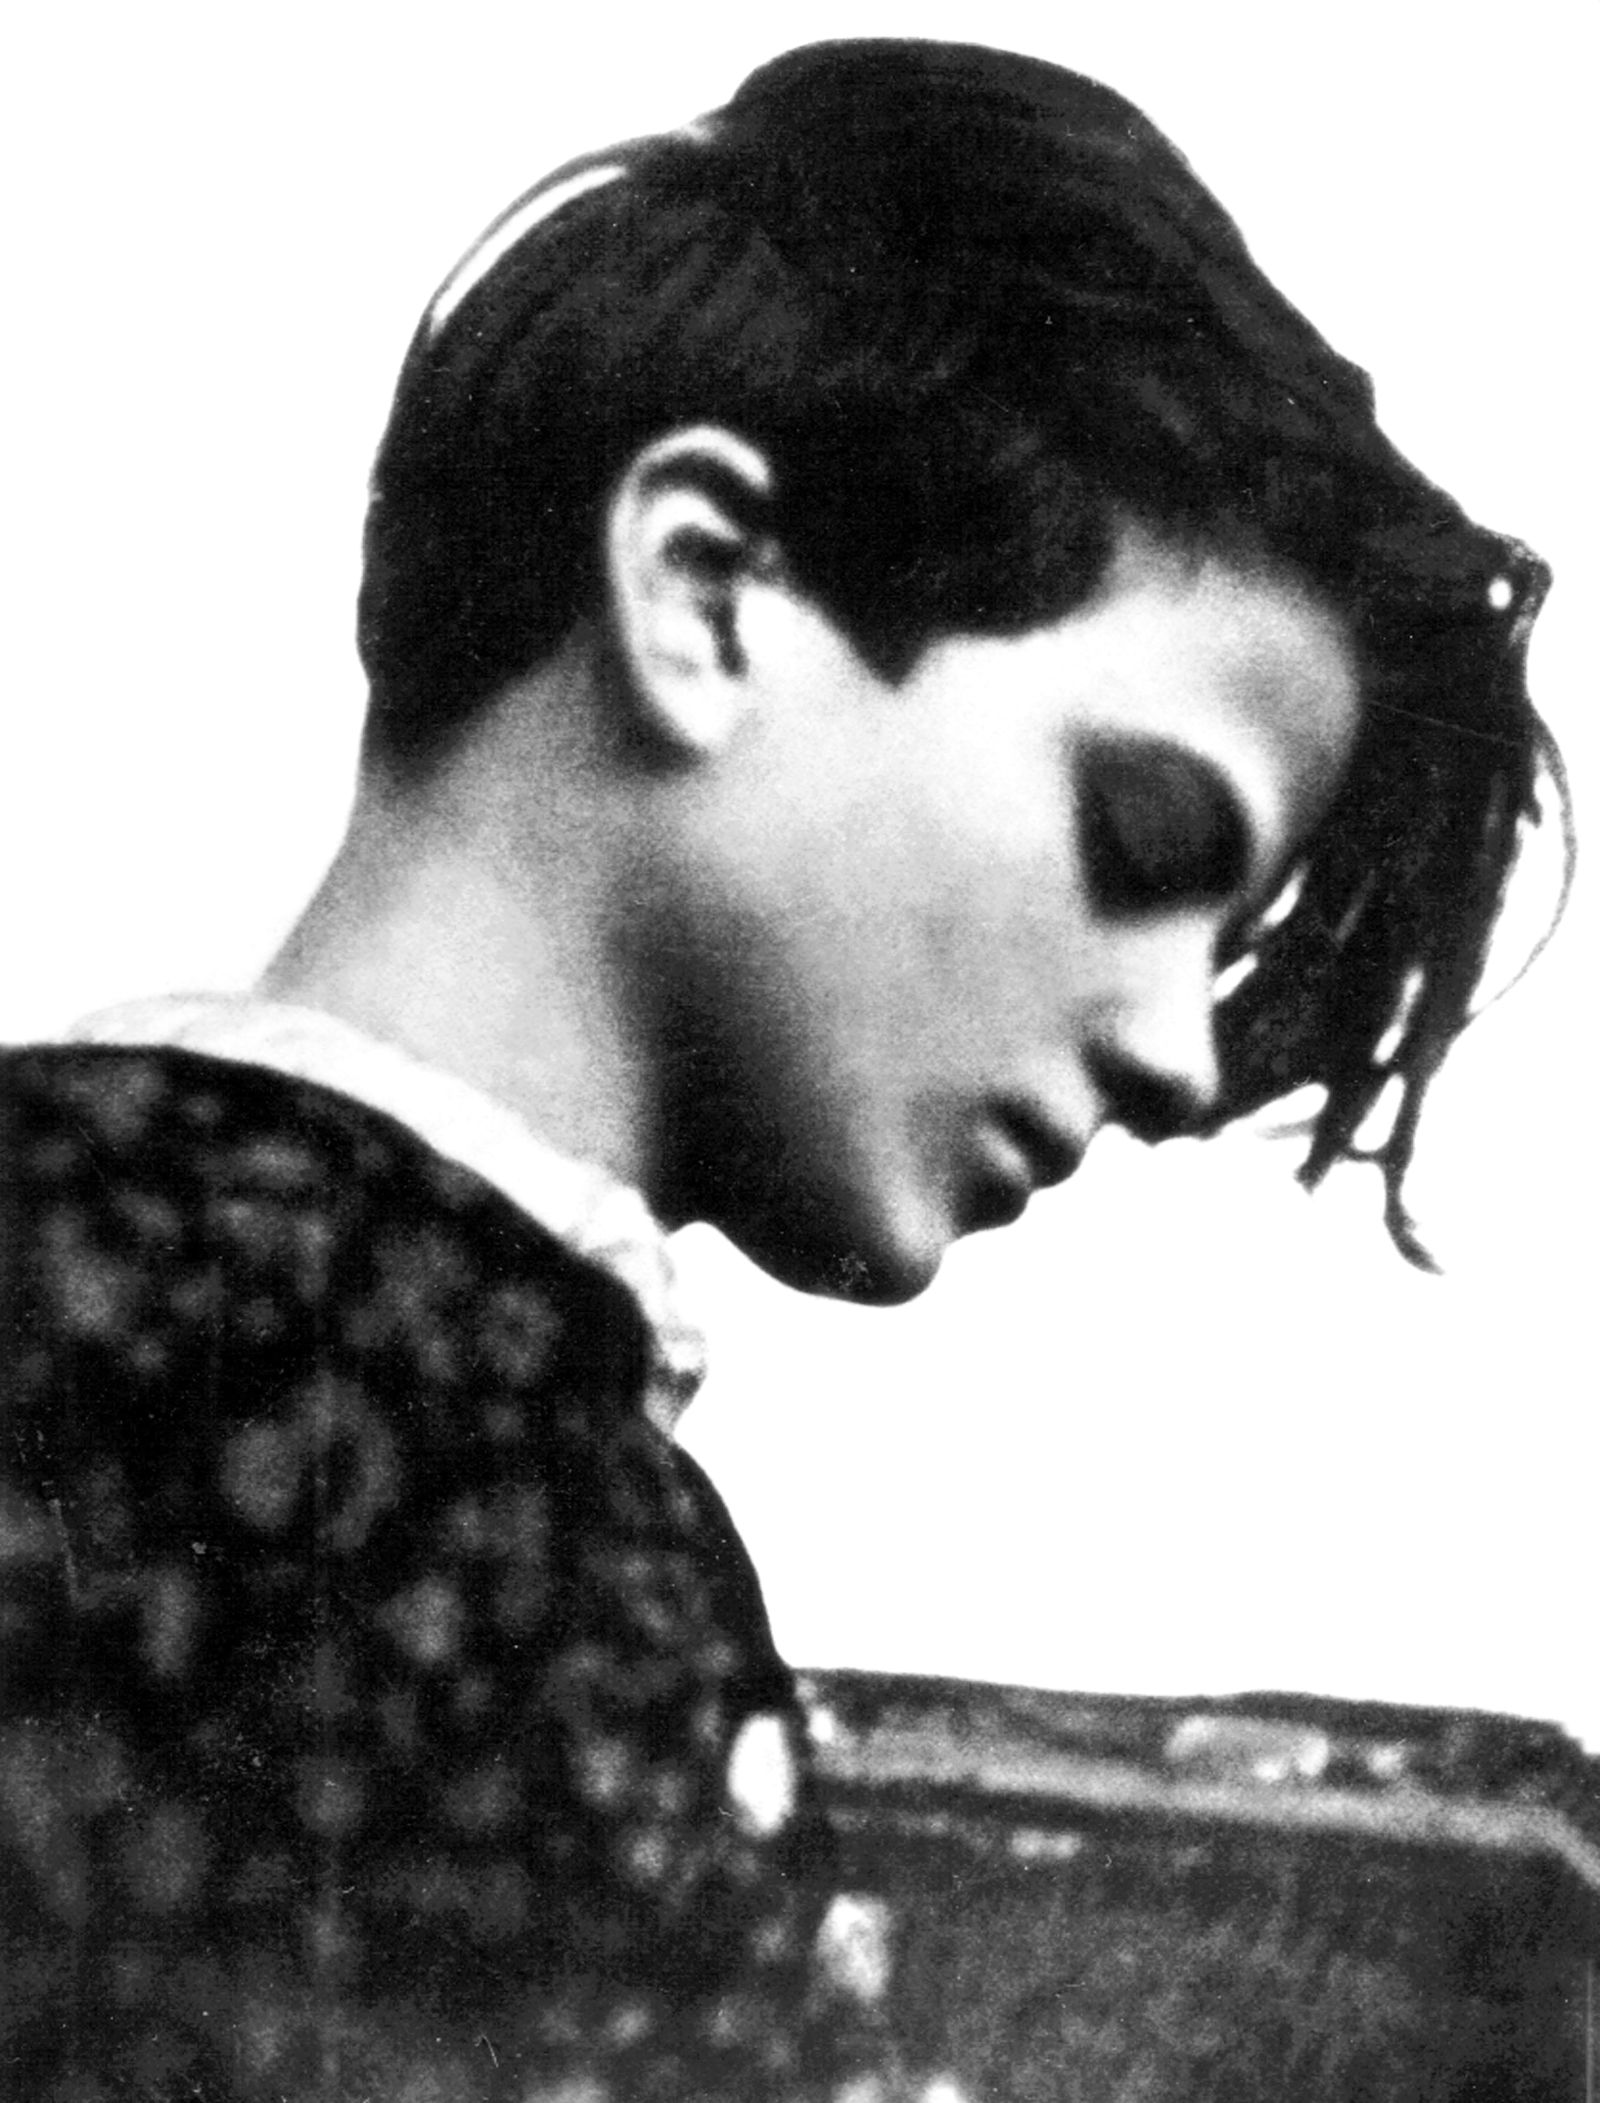 Hitler: assassination attempt, July 20, 1944. Sophie Scholl, who was in the German Resistance, was beheaded.